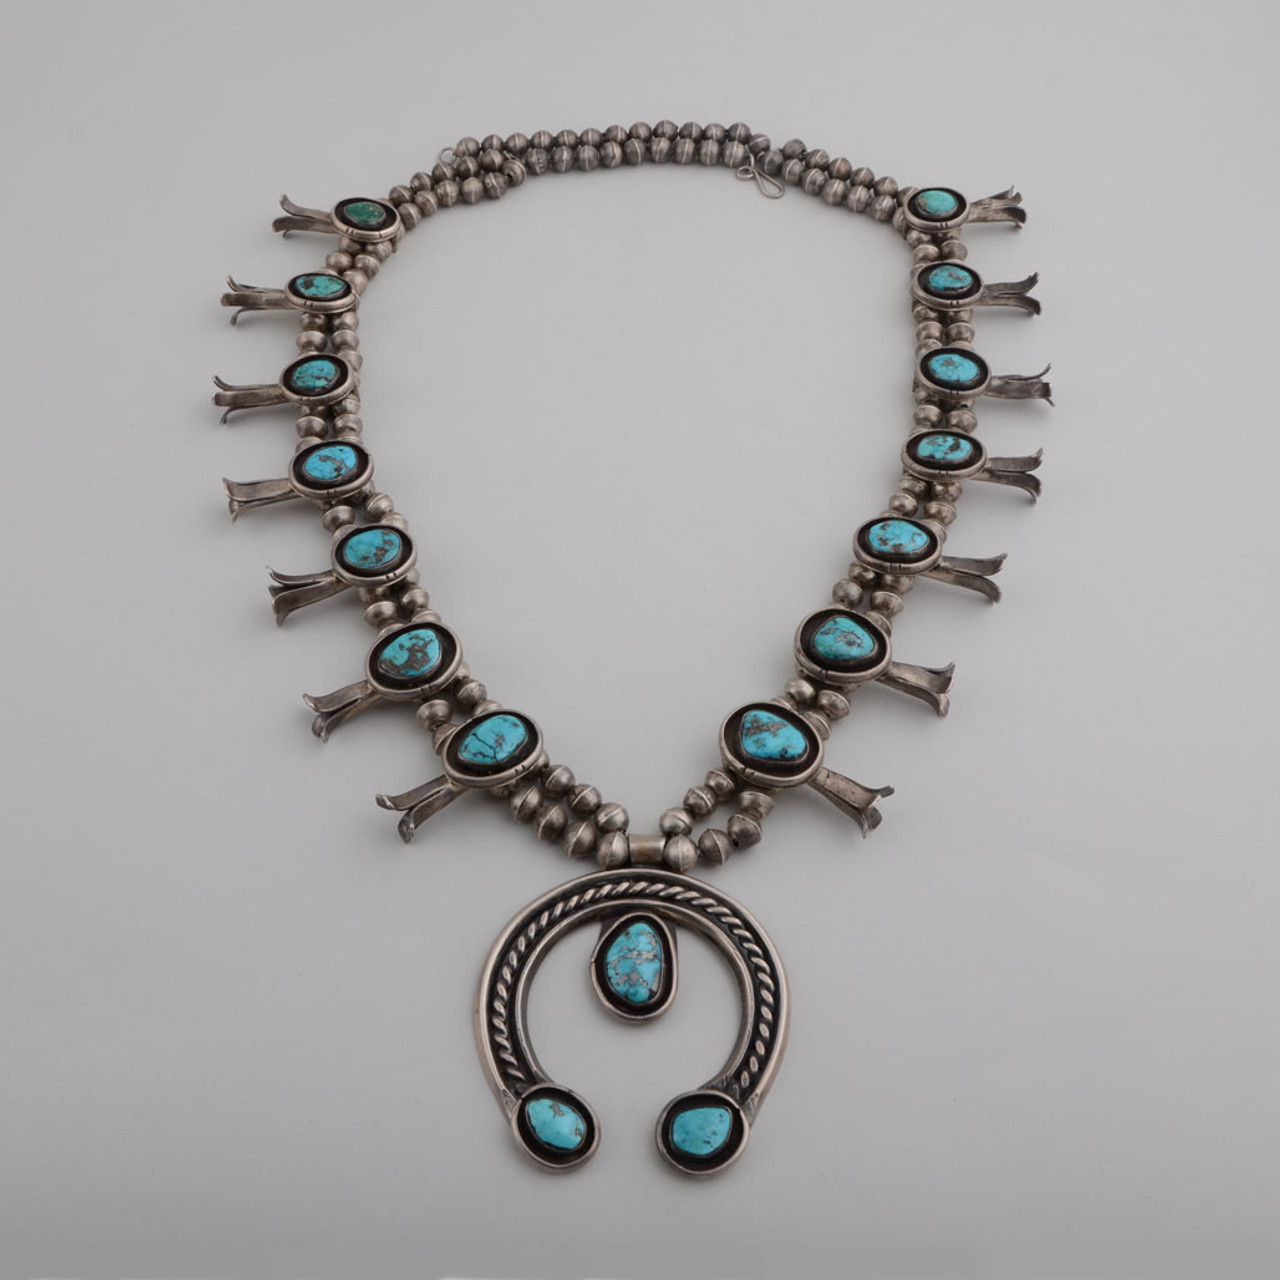 Navajo Green Turquoise Bead and Large Silver Squash Blossom Necklace